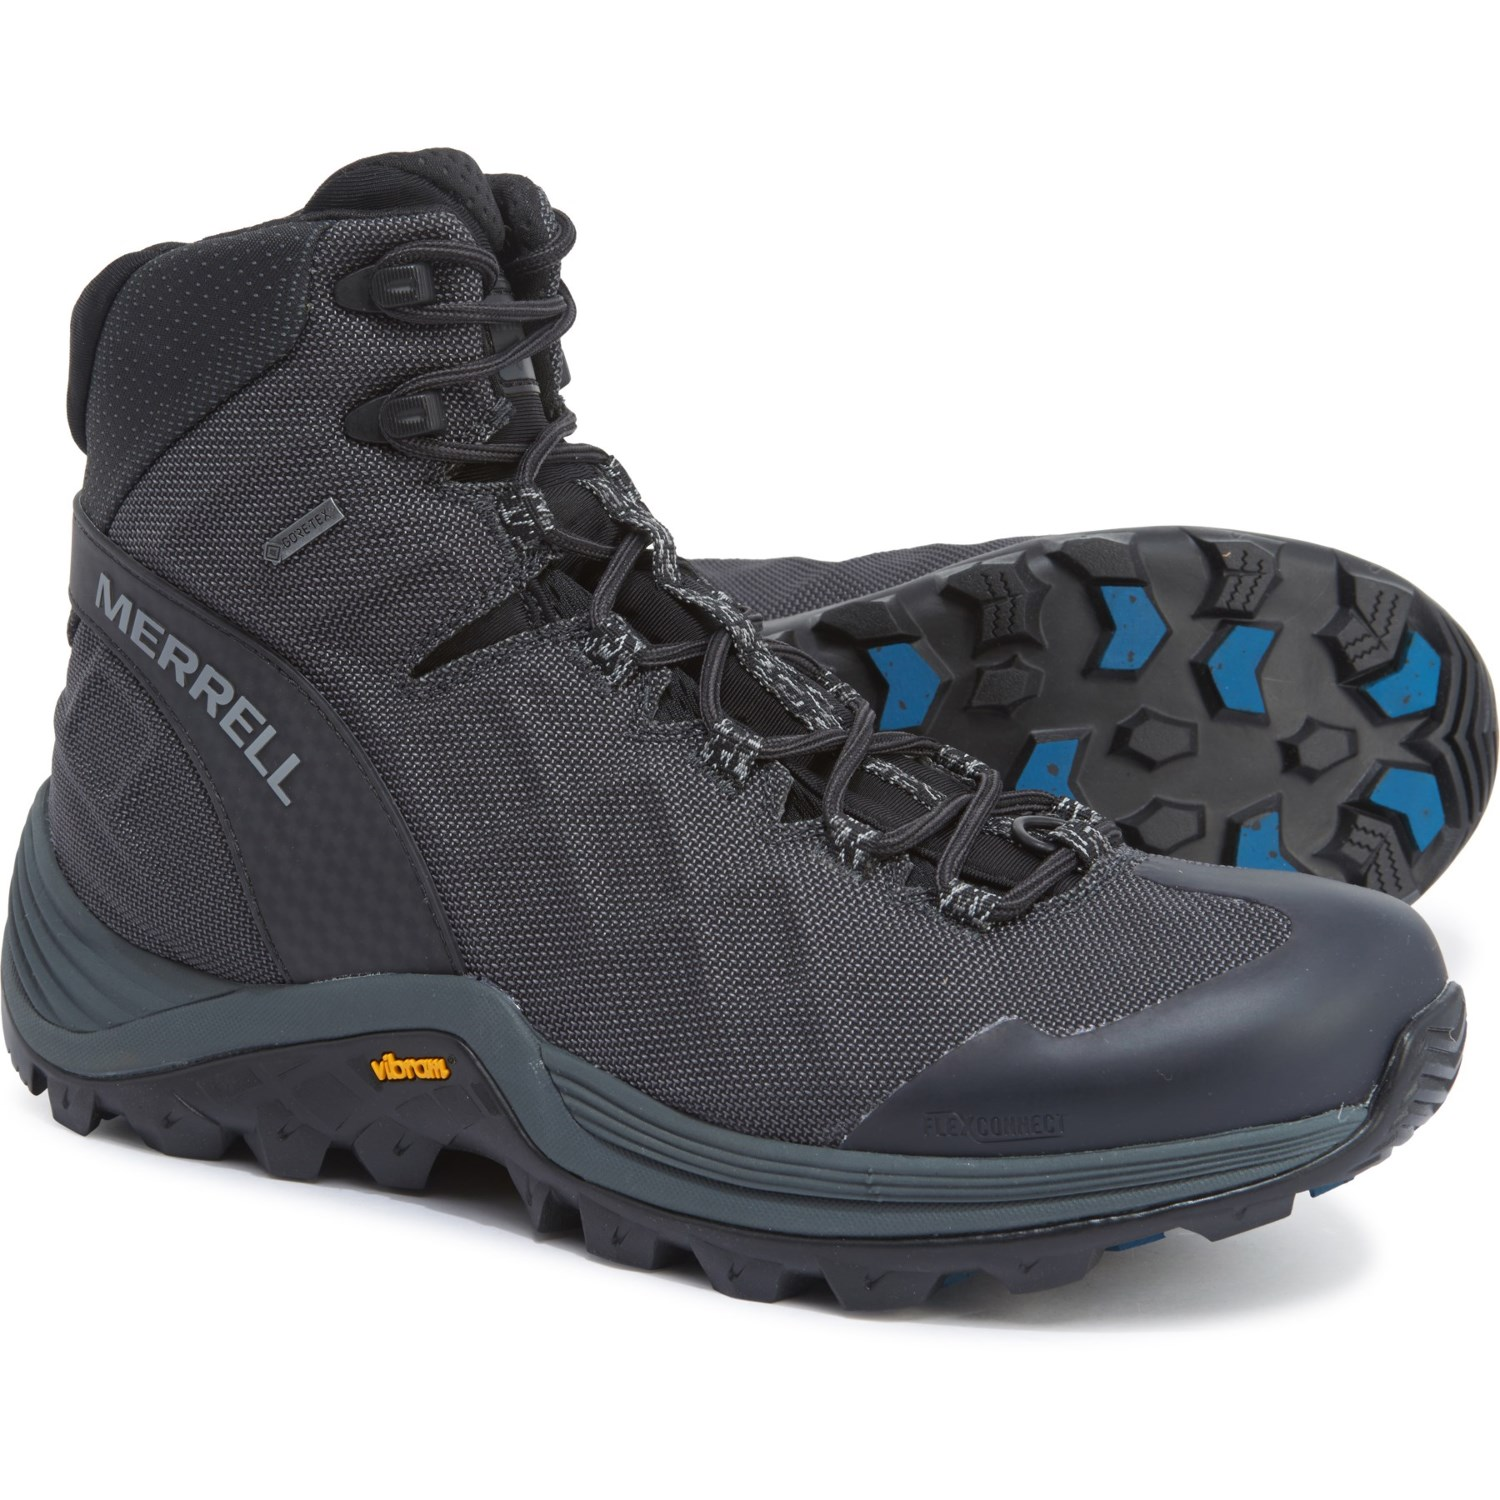 24013f80ab Merrell Thermo Rogue Gore-Tex® Hiking Boots (For Men) - Save 38%